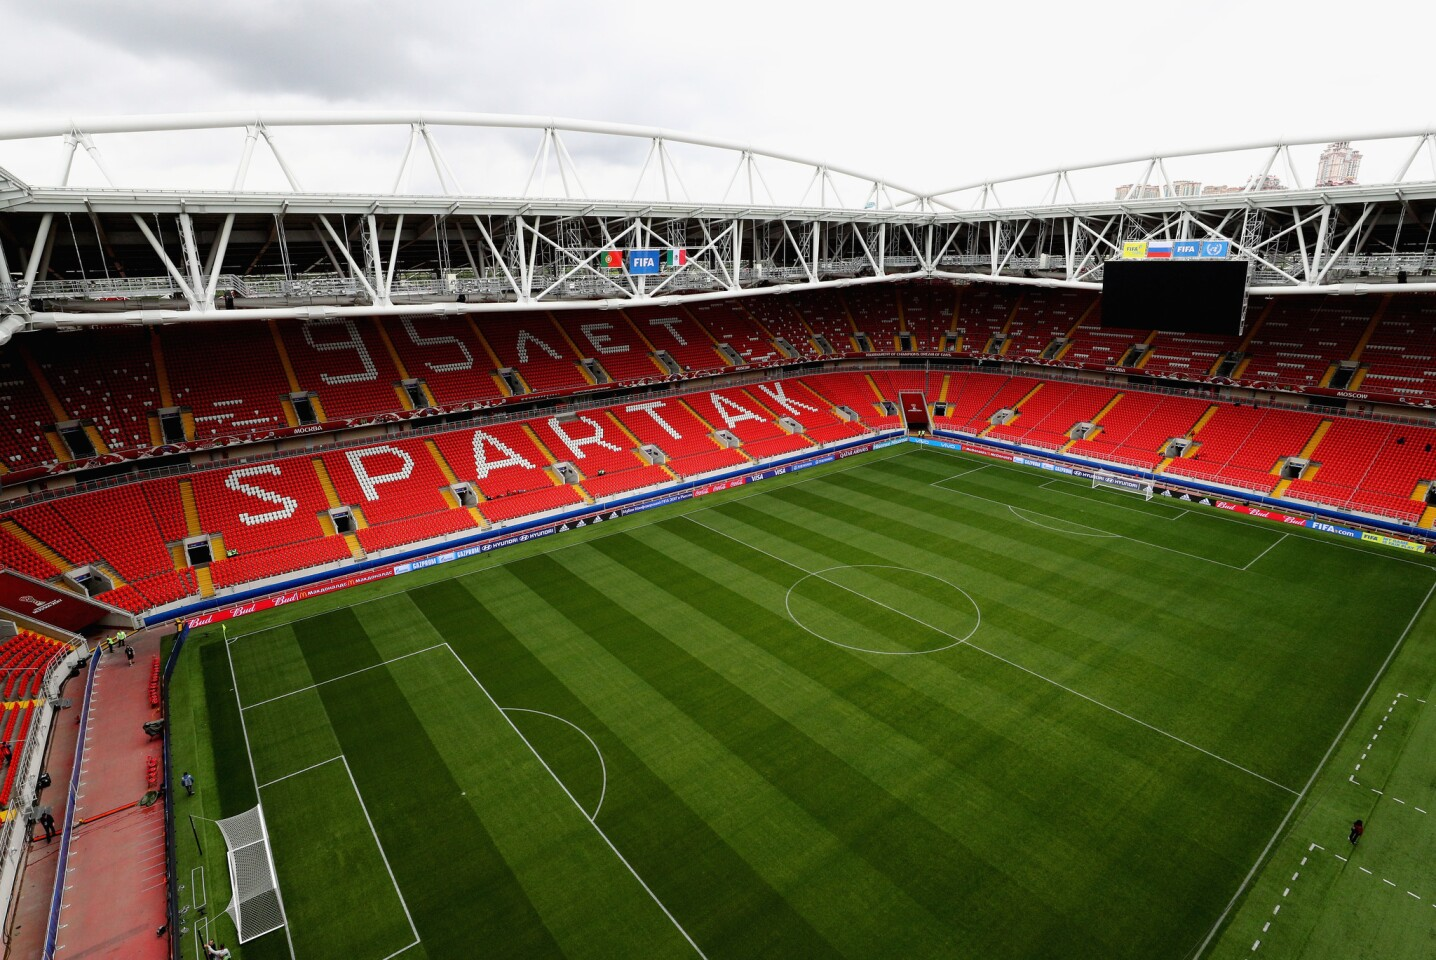 MOSCOW, RUSSIA - JULY 02: General view inside the stadium prior to the FIFA Confederations Cup Russia 2017 Play-Off for Third Place between Portugal and Mexico at Spartak Stadium on July 2, 2017 in Moscow, Russia. (Photo by Ian Walton/Getty Images)